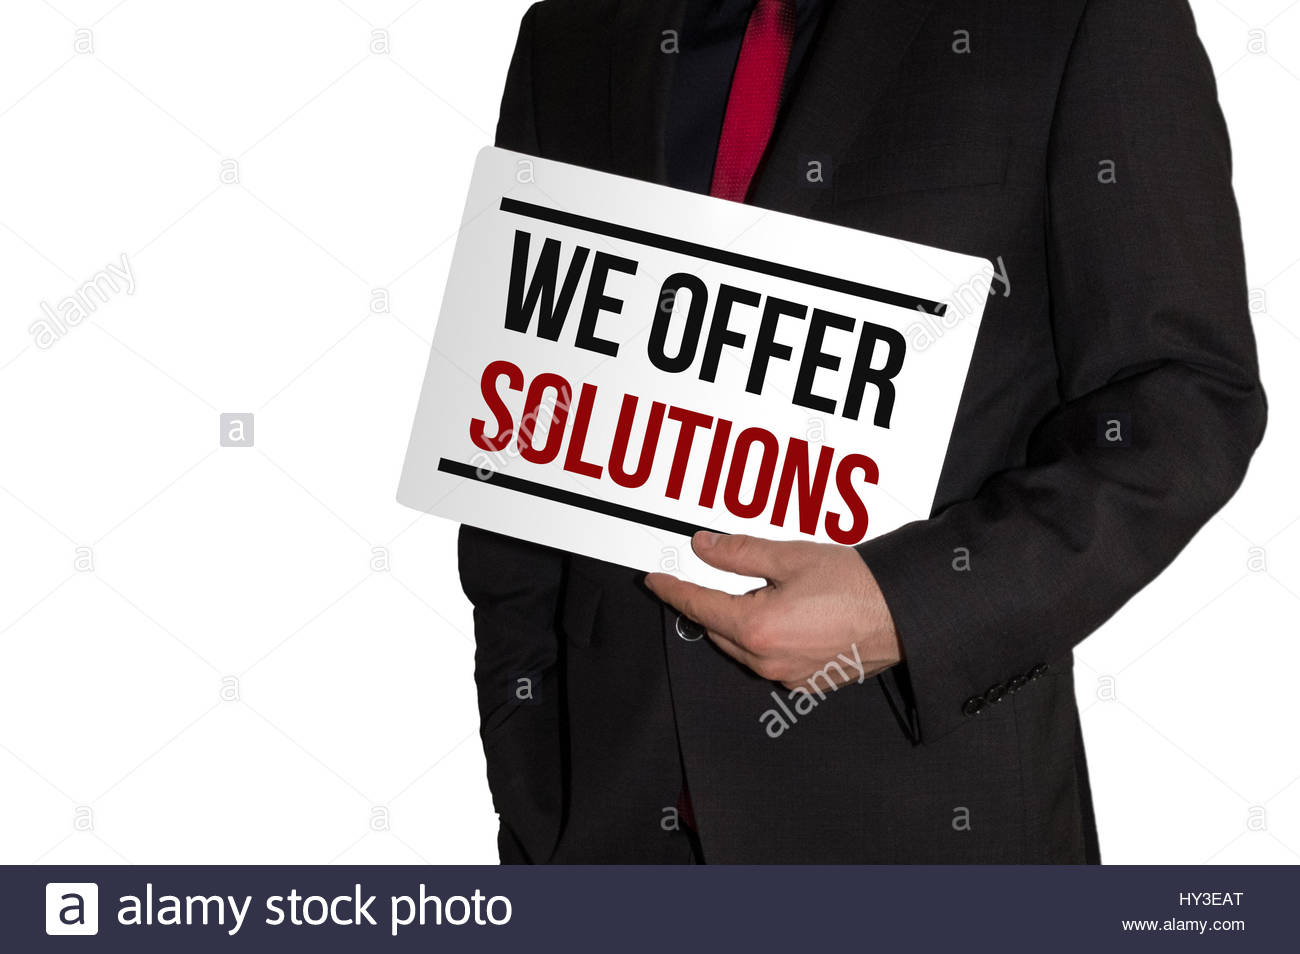 We offer solutions - business concept - Stock Image